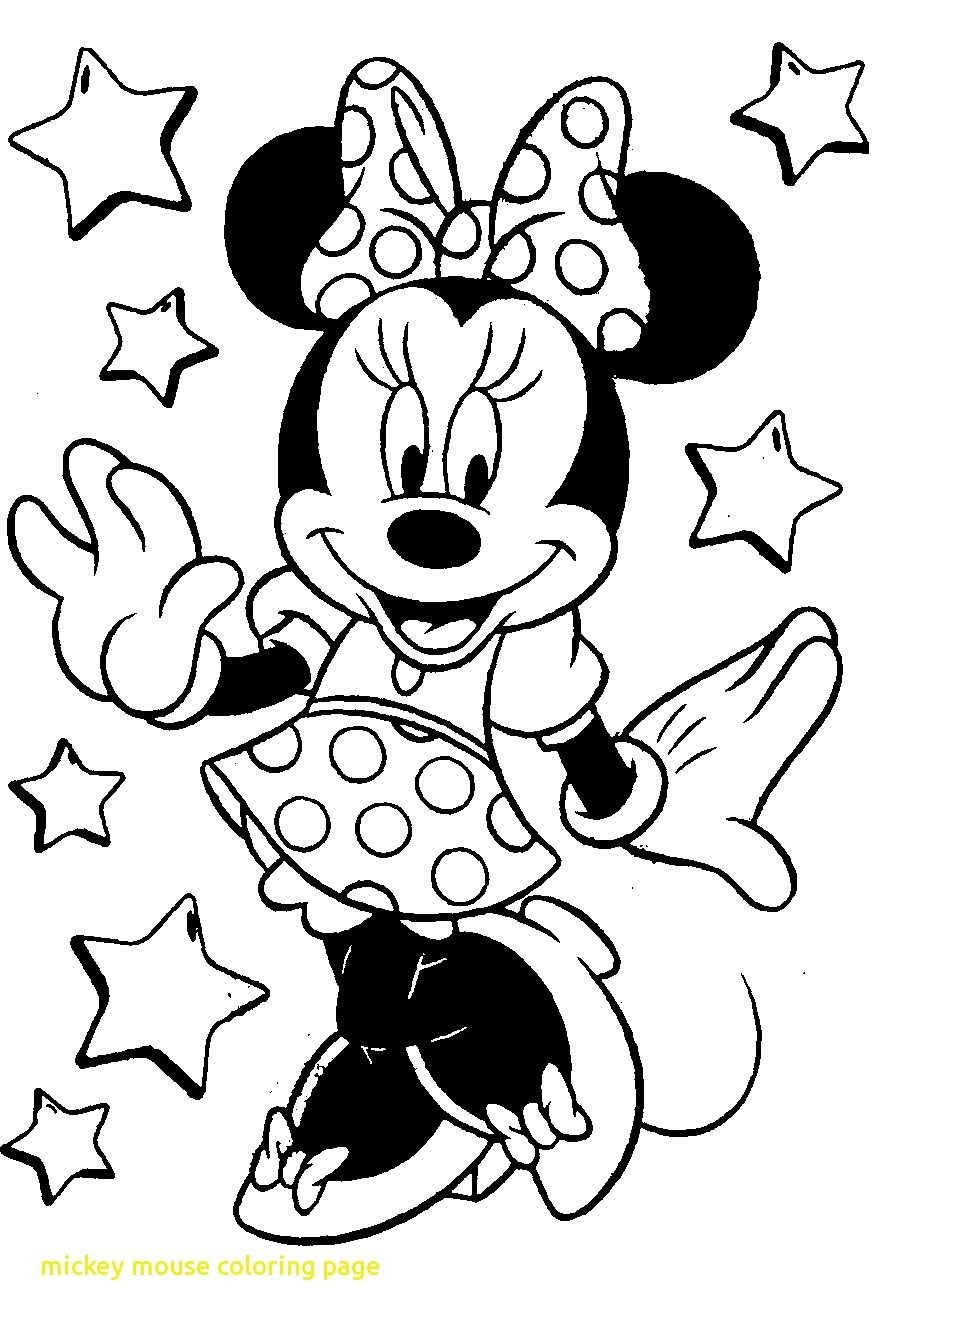 Mickey Printable Coloring Pages At Getdrawingscom Free For